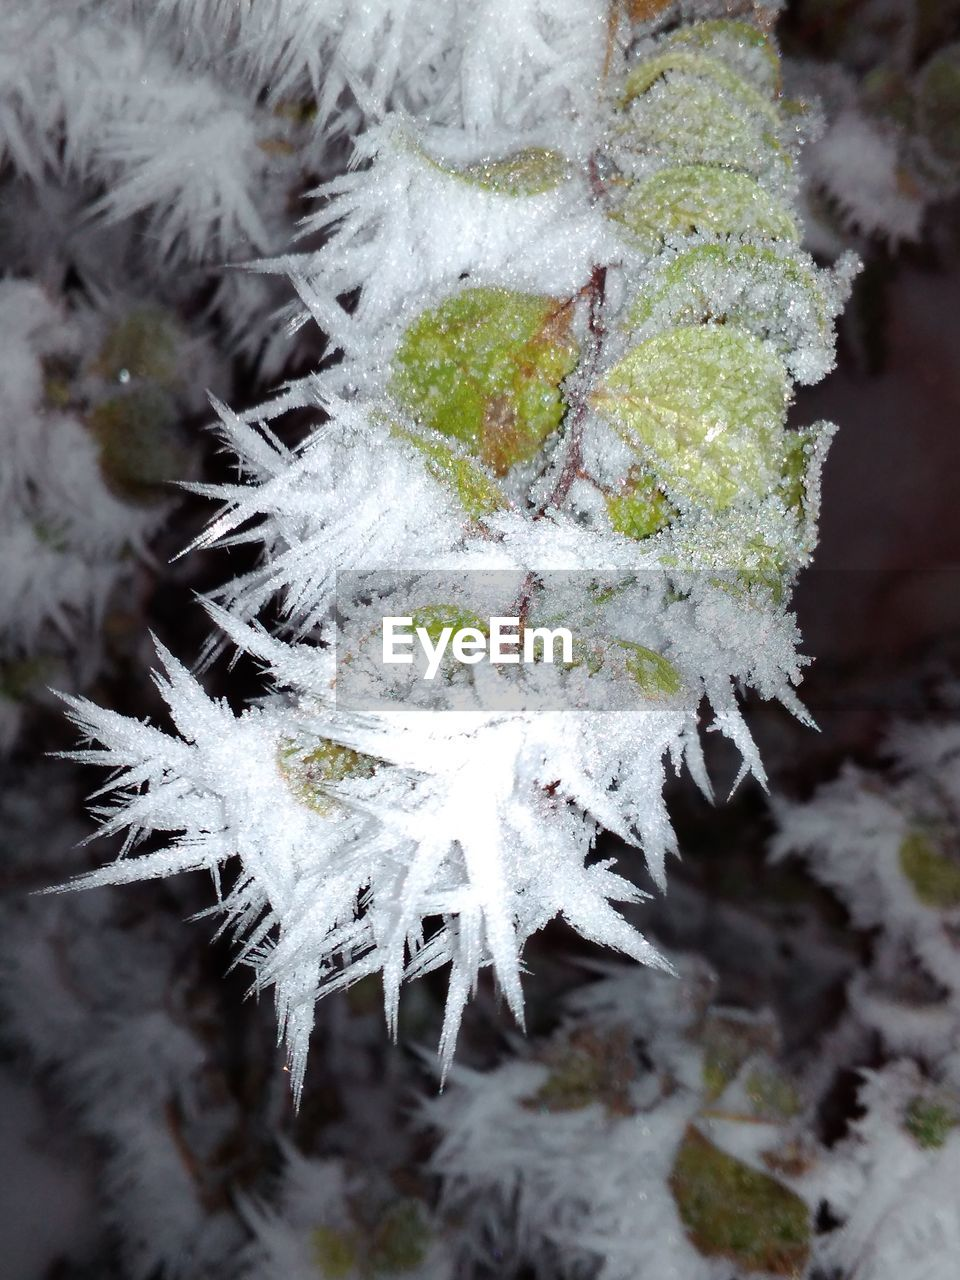 winter, cold temperature, snow, frozen, plant, ice, beauty in nature, close-up, white color, nature, day, growth, no people, focus on foreground, vulnerability, frost, fragility, tree, plant part, outdoors, lichen, cold, extreme weather, blizzard, leaves